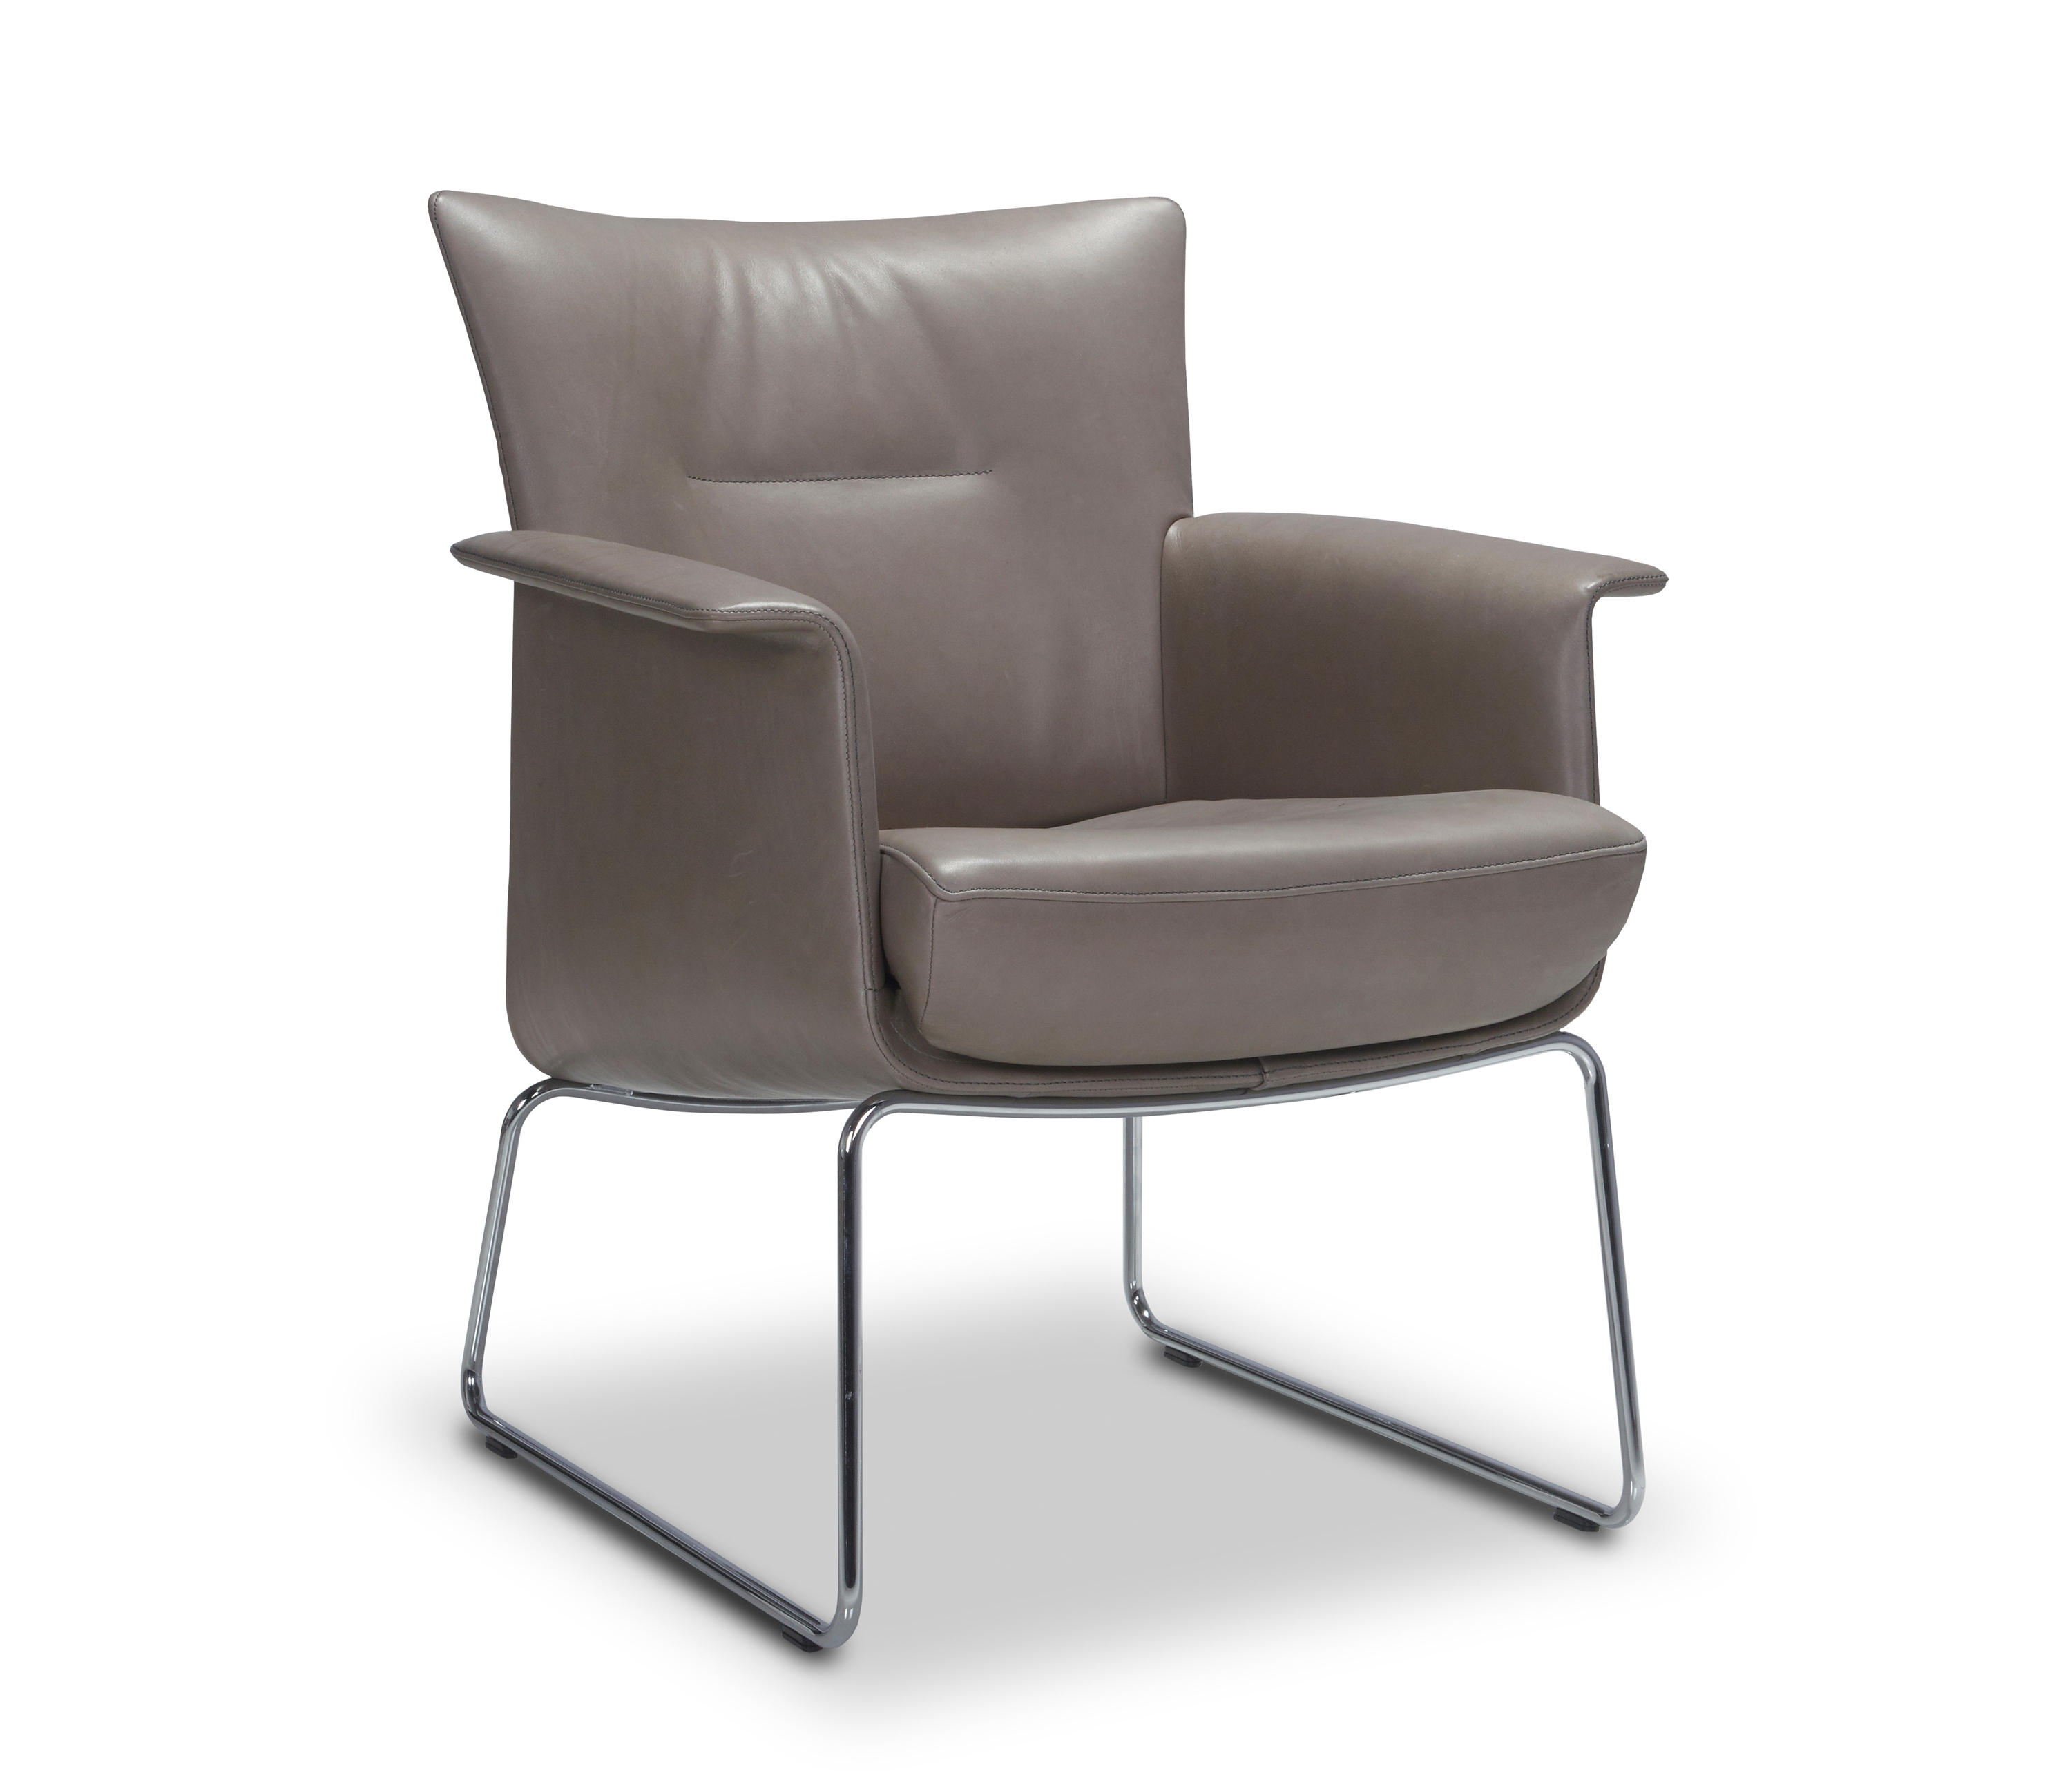 Jori Sessel Aida Armchair Armchairs From Jori Architonic